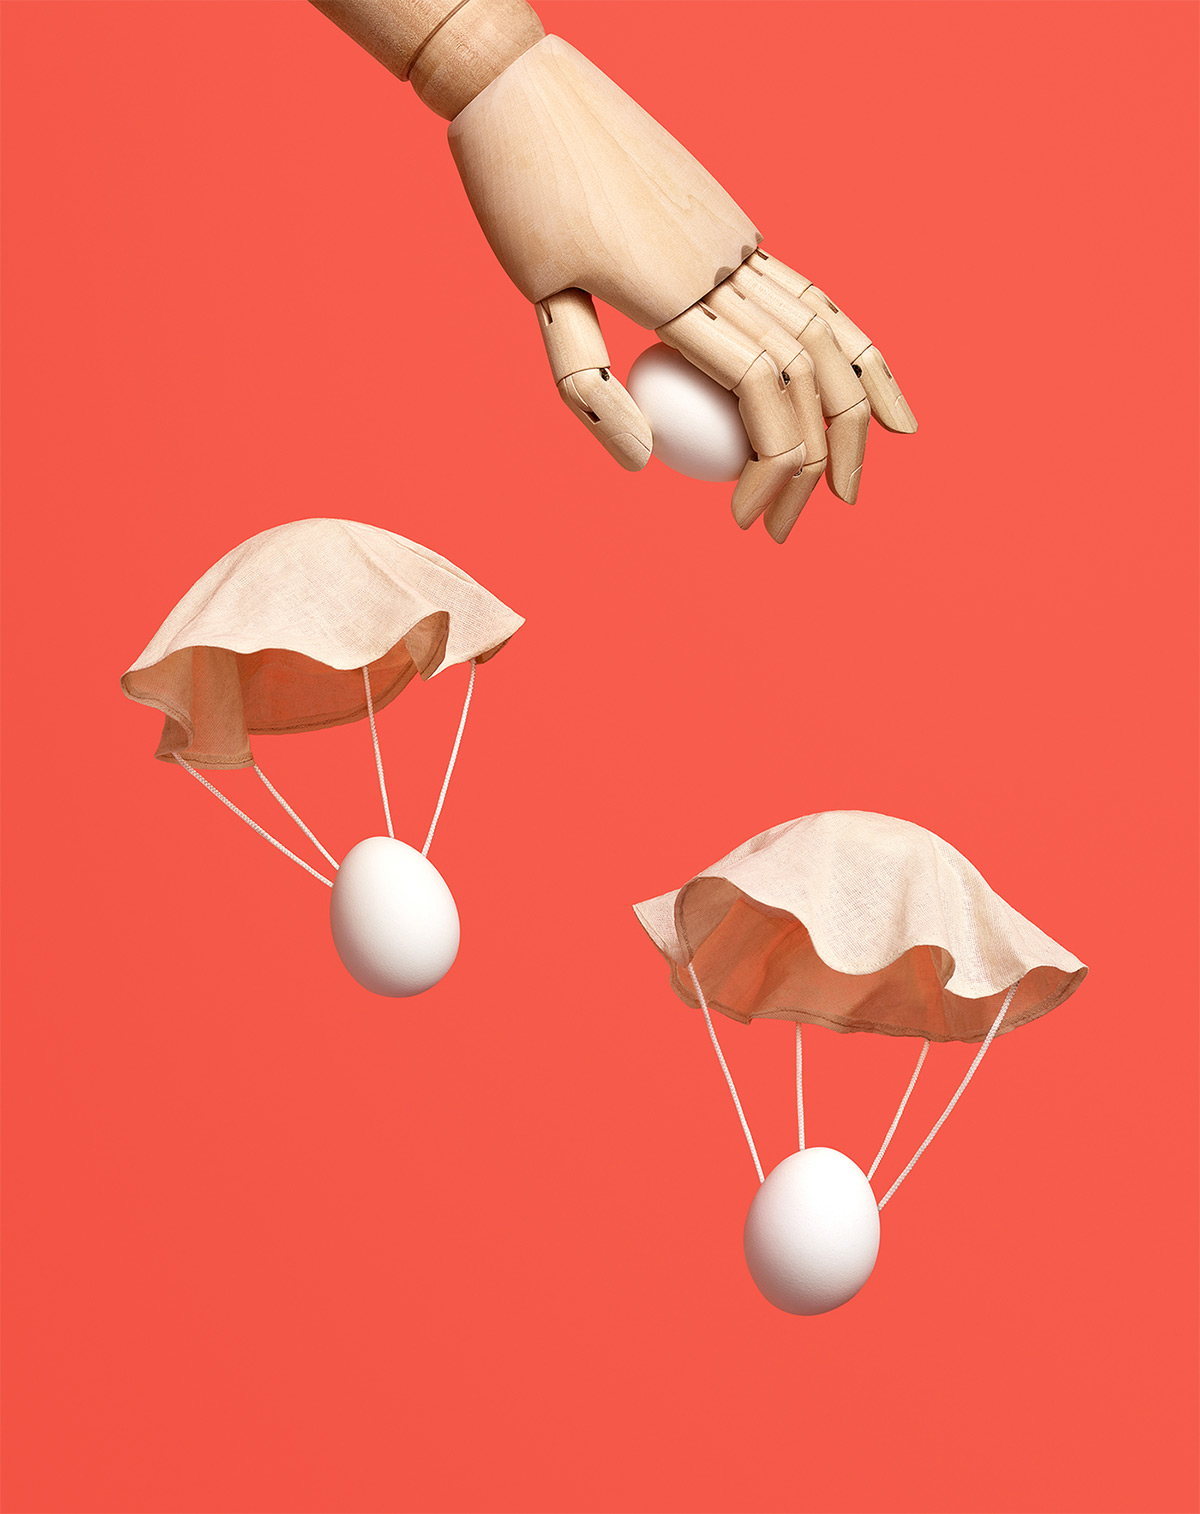 https://tickertapecdn.tdameritrade.com/assets/images/pages/md/Wooden hand dropping eggs on parachutes